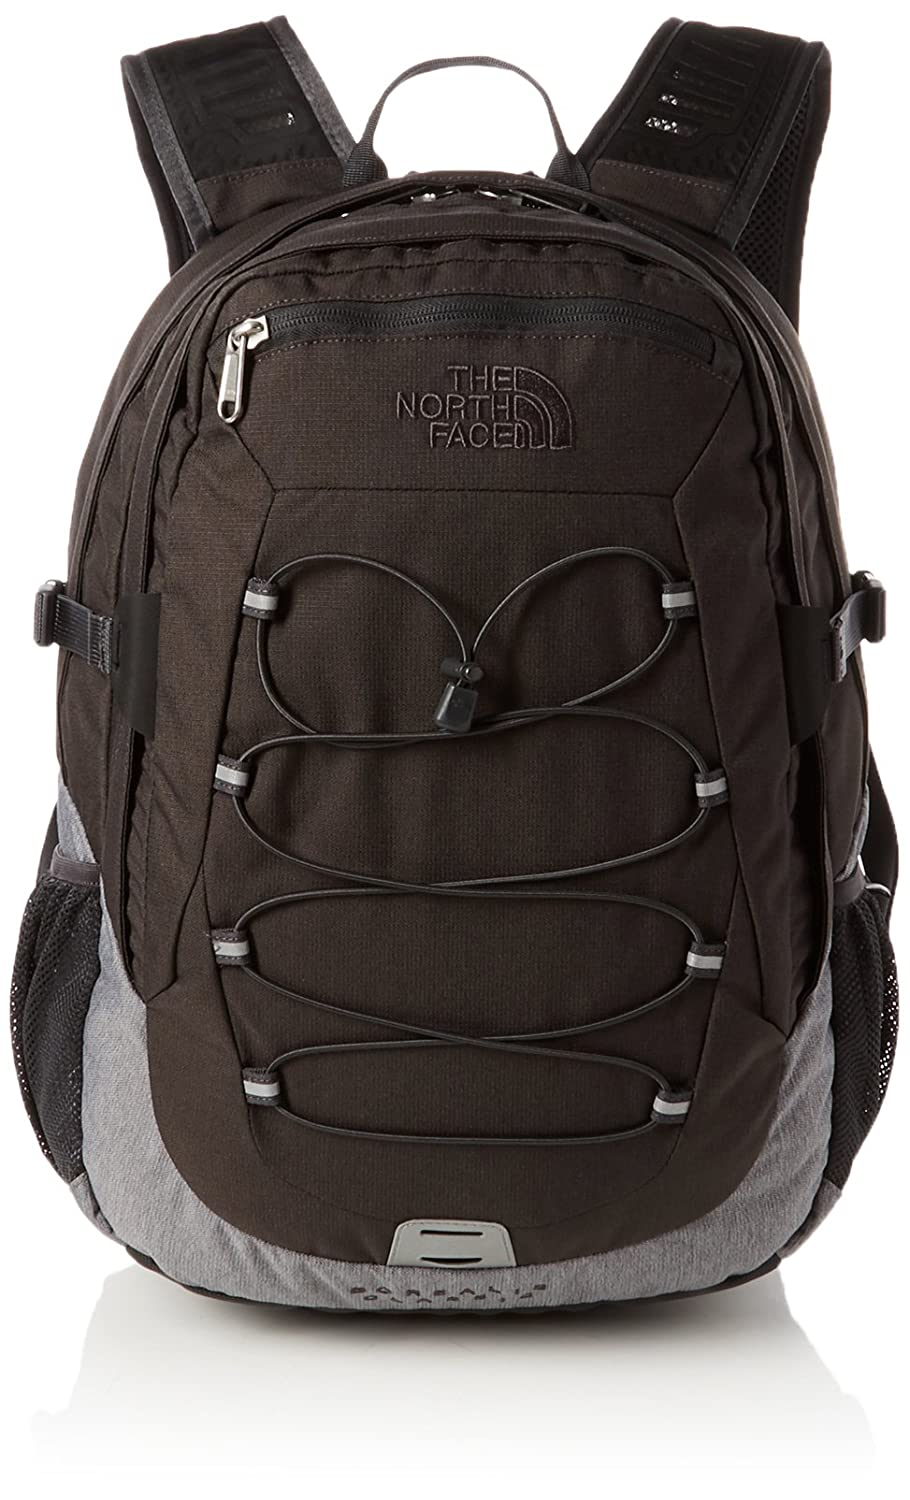 fcf4b7f1e The North Face Borealis Men's Outdoor Backpack, Grey (Tnf Dark Grey  Heather), One Size: Amazon.co.uk: Sports & Outdoors